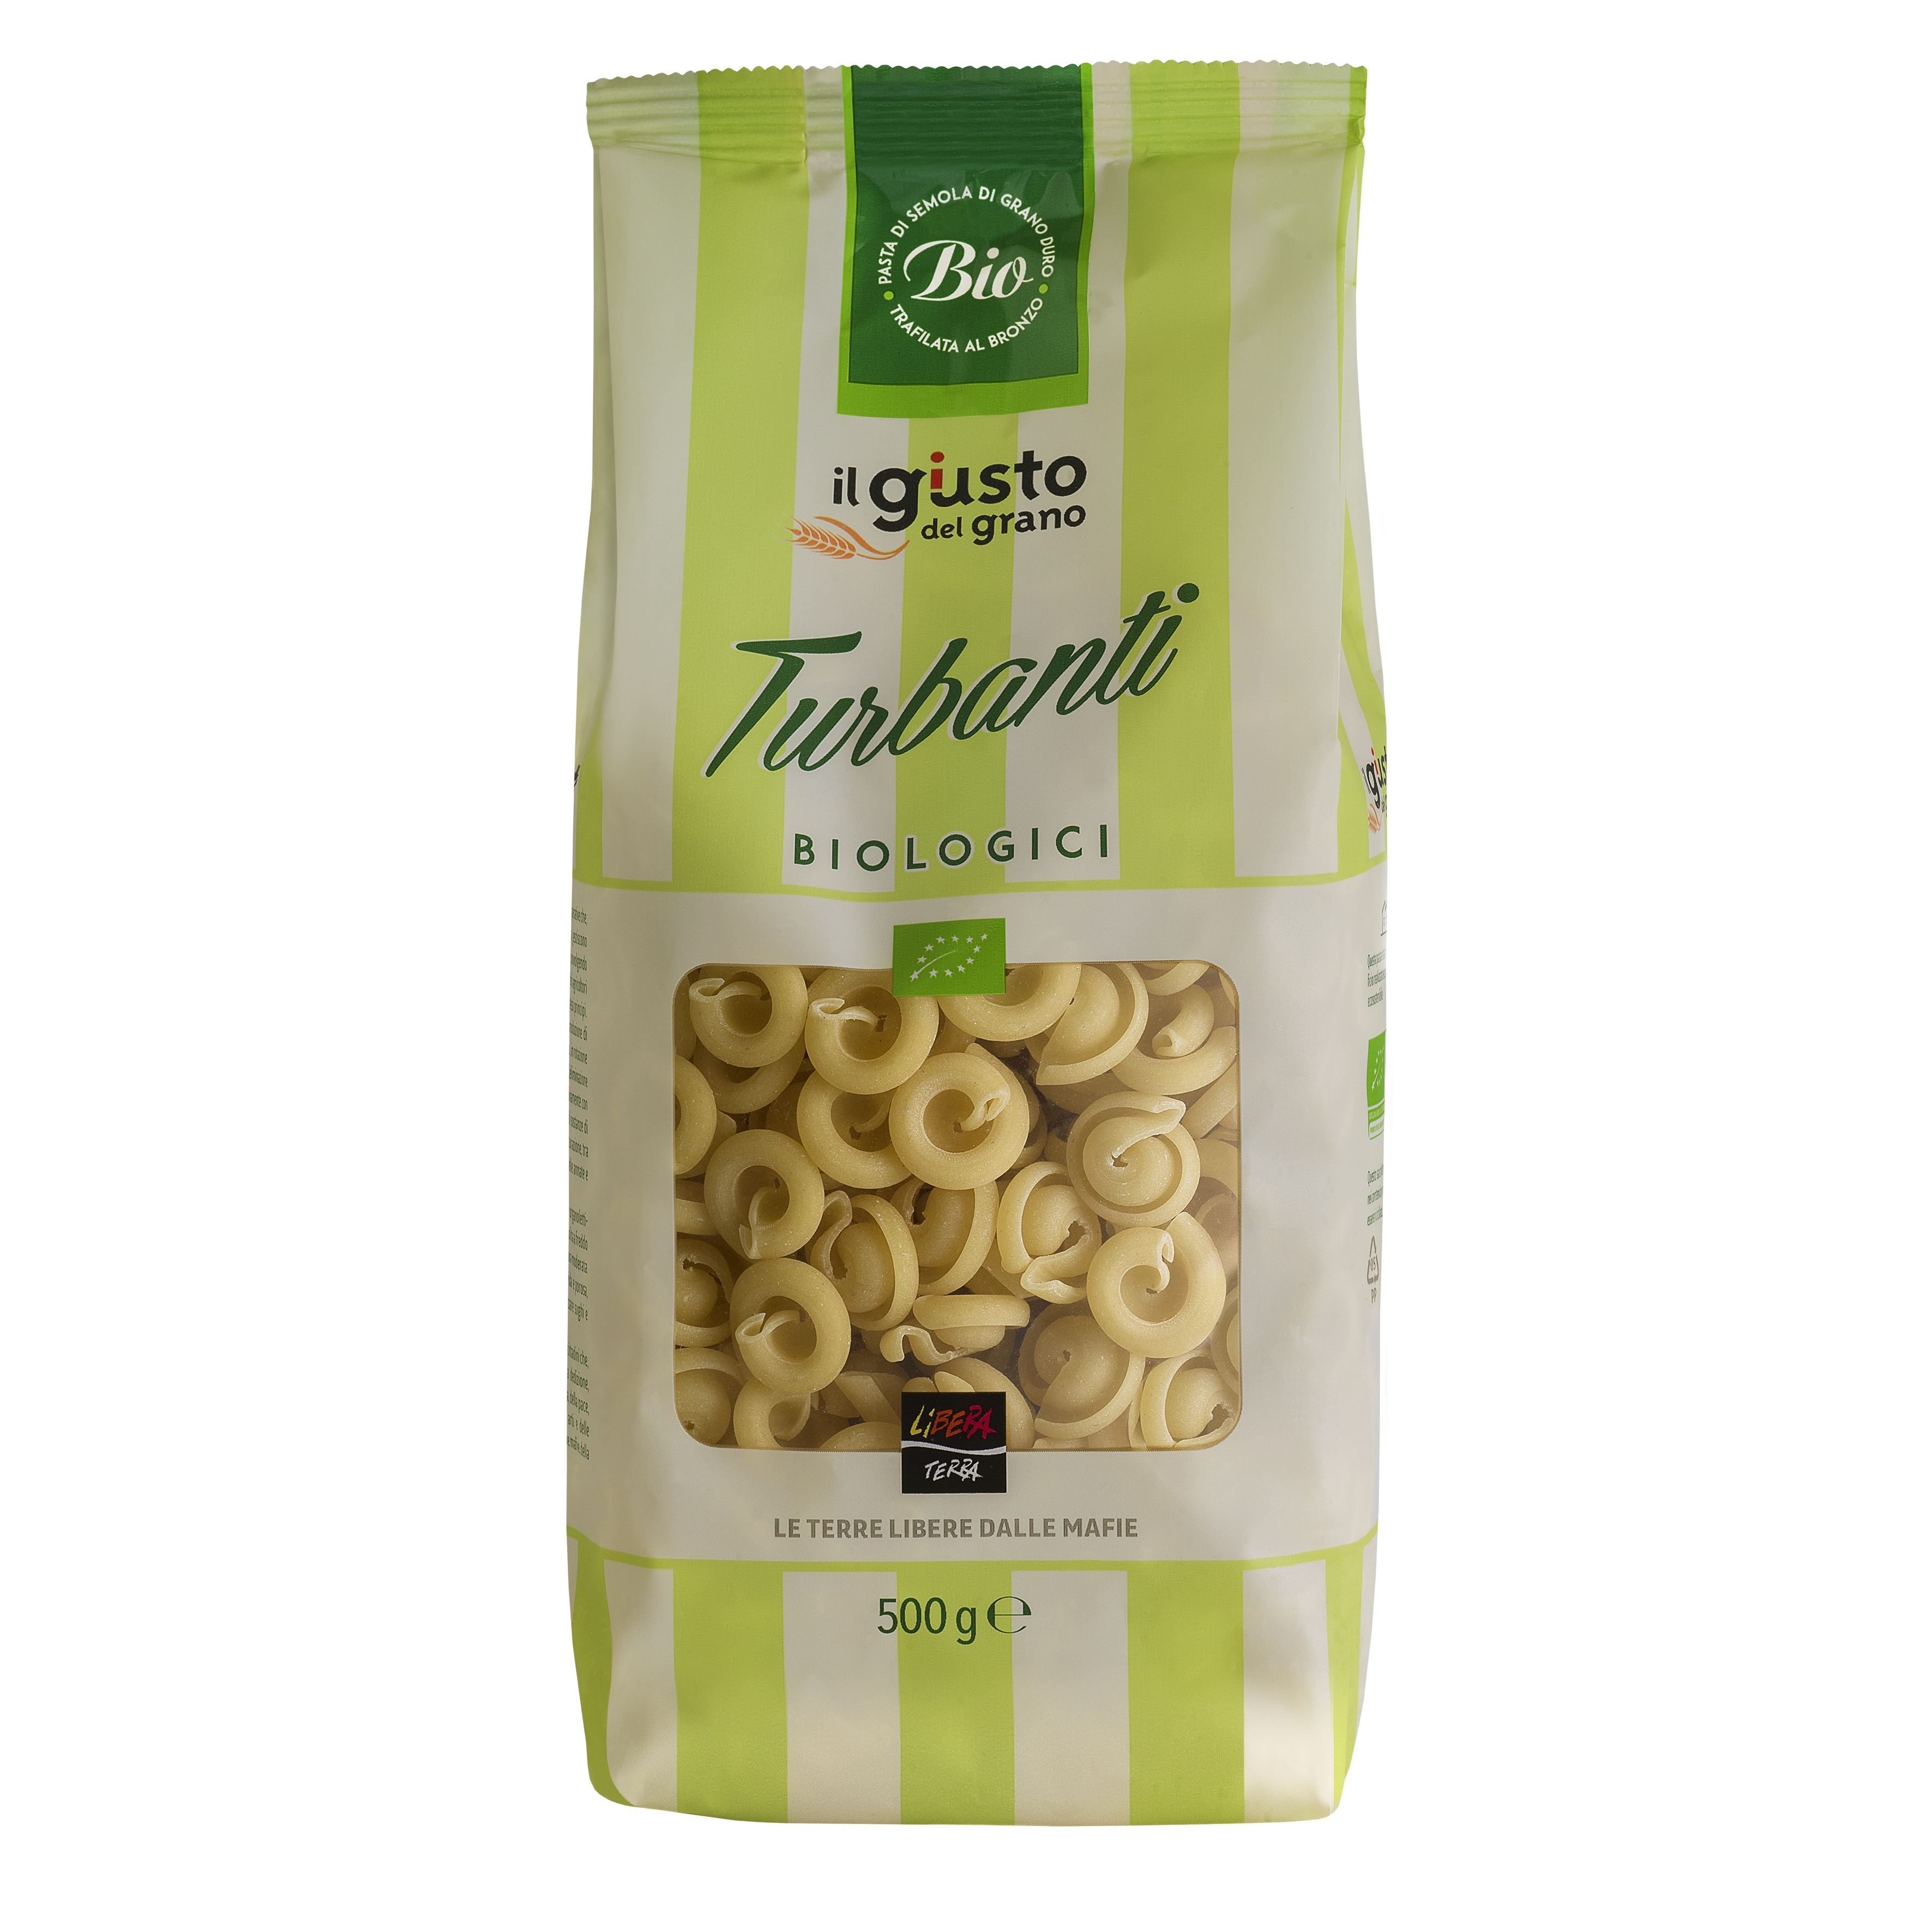 Turbanti Biologici 500g